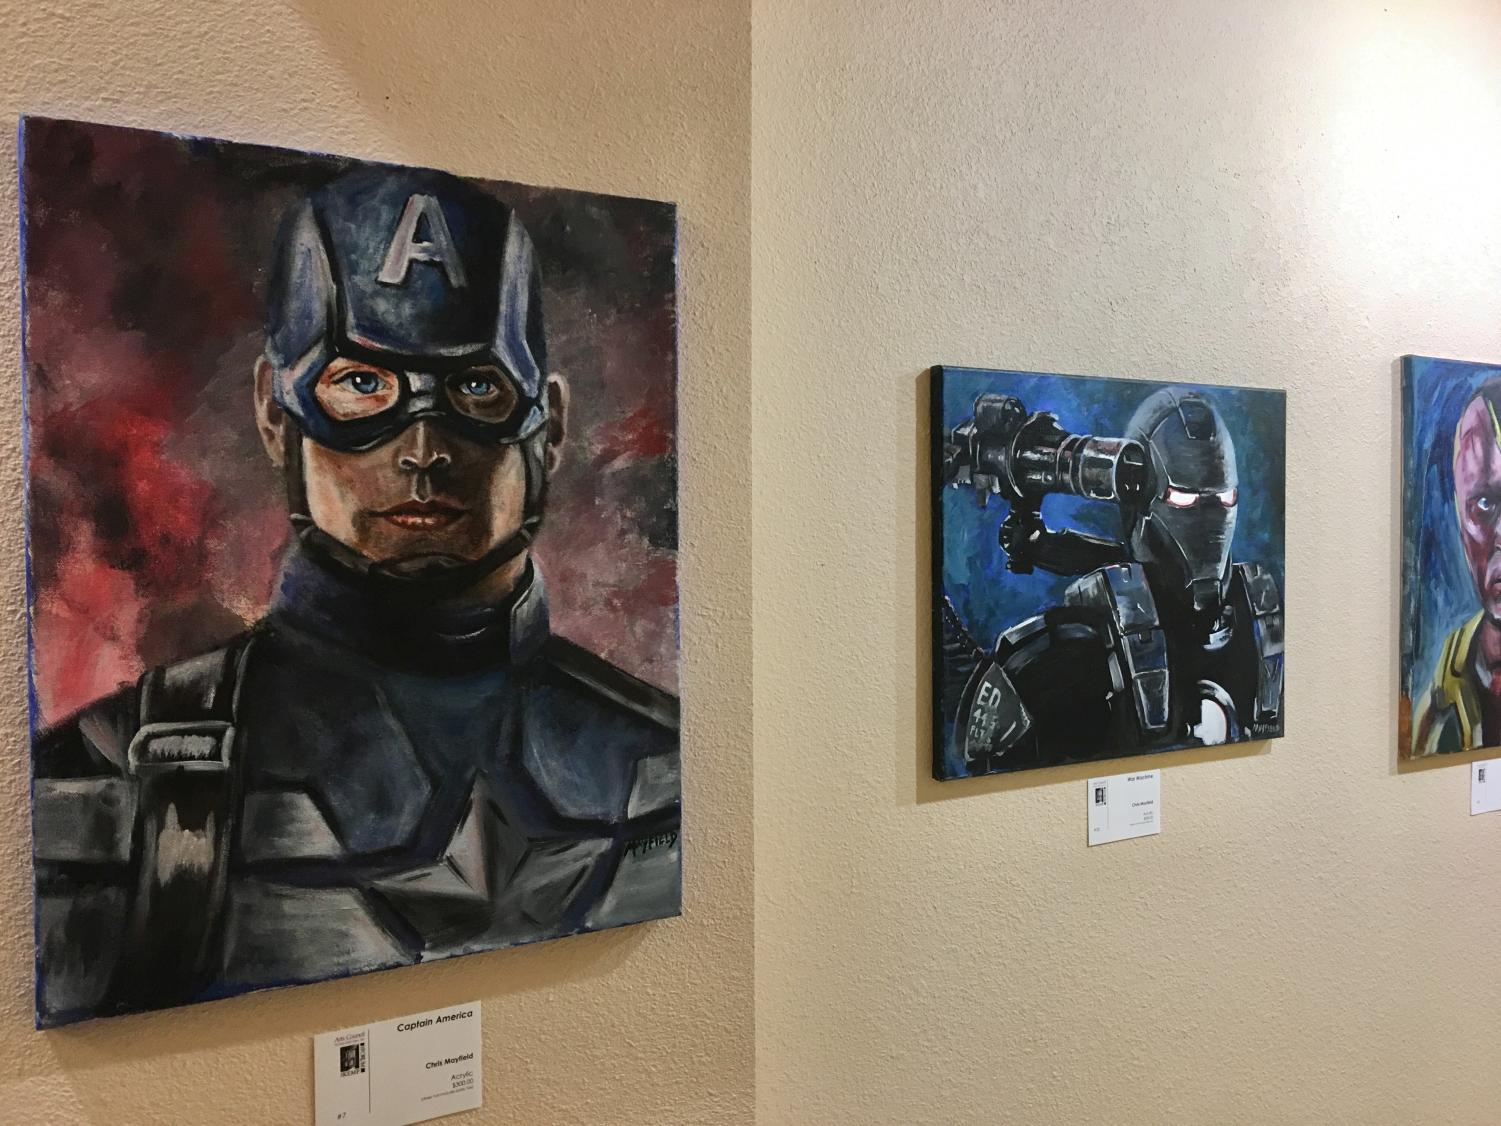 Chris Mayfield's paintings of Captain America, War Machine, and Vision are on display at The Kemp. Photo by Peyton Alonzo